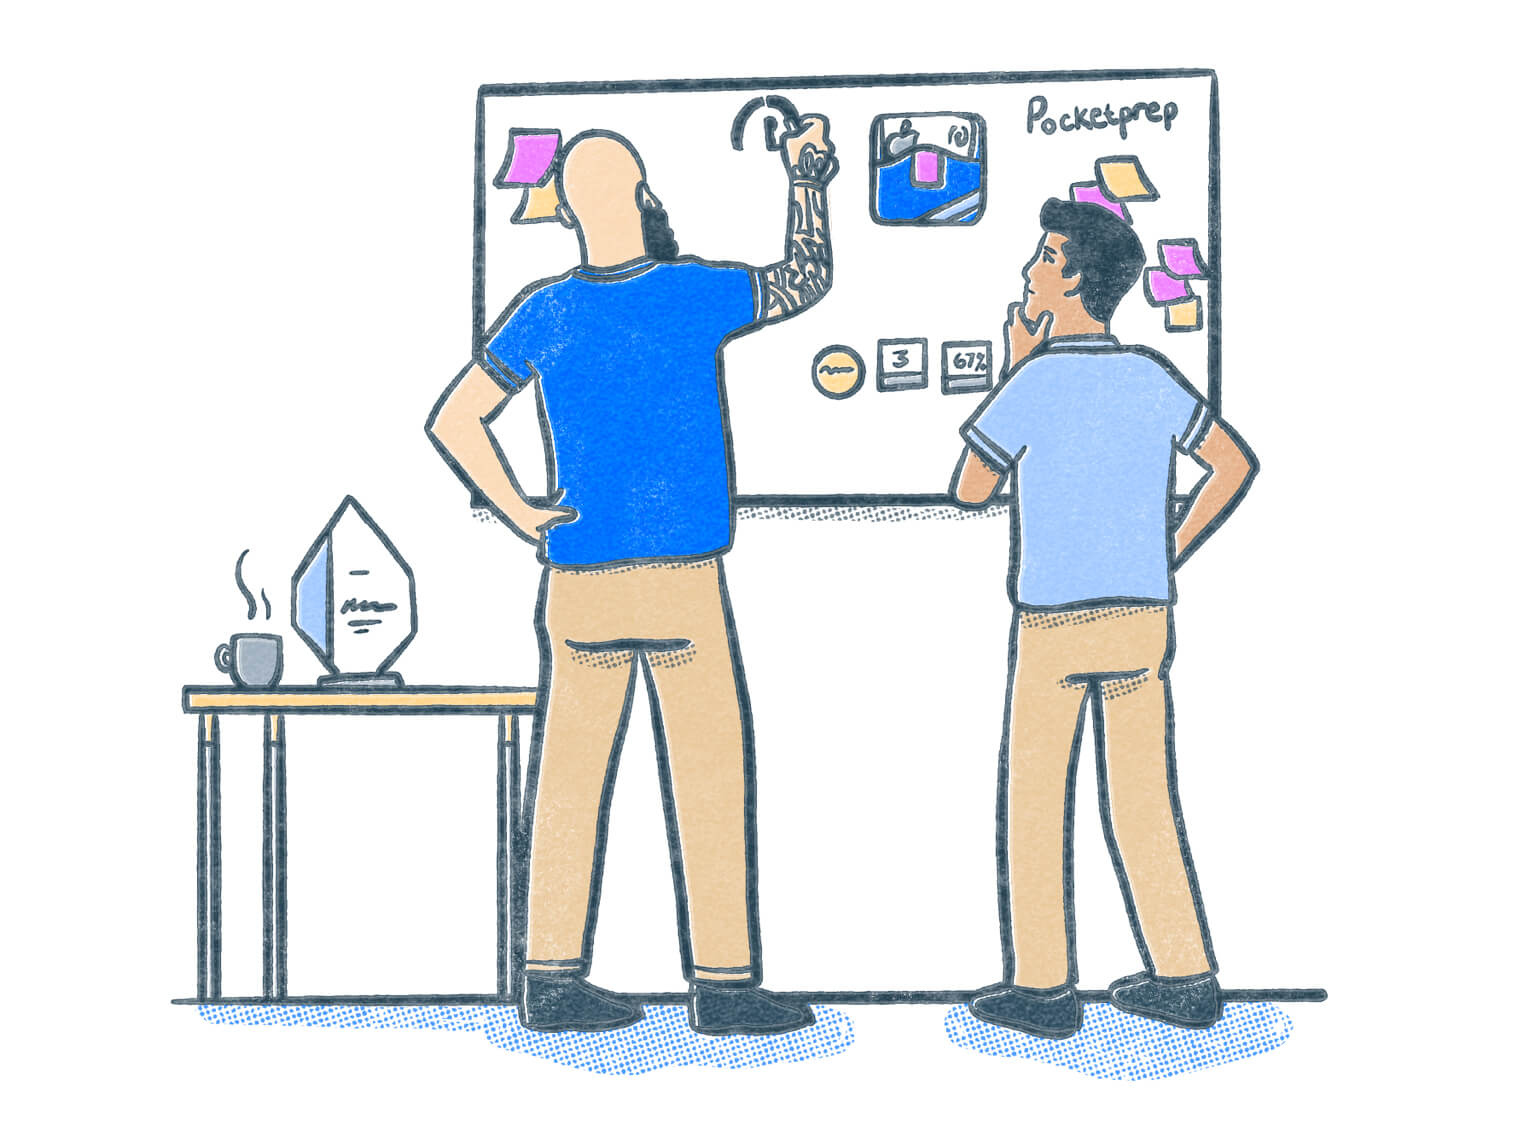 Co-founders Peter and Ken work at a whiteboard to dream up Pocket Prep. Illustration.